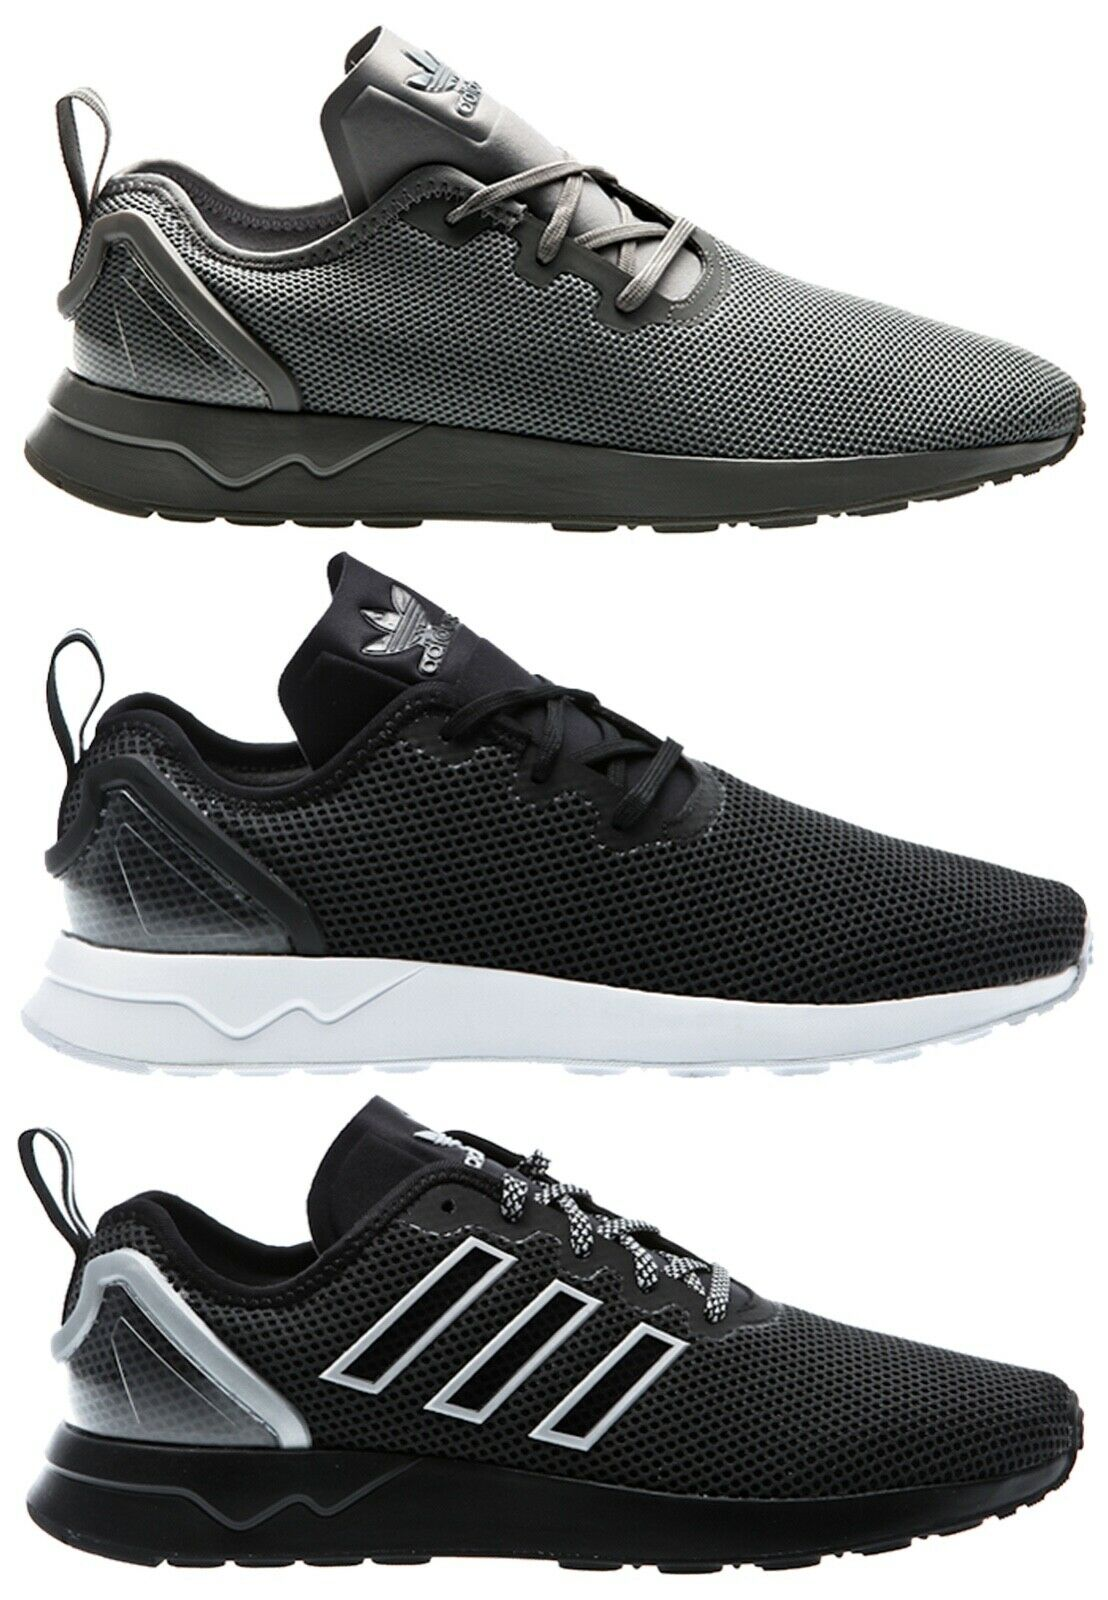 official photos 14bff 92f89 Adidas Zx Flux Racer Adv Asymmetrical Men Sneaker Mens Shoes Runnings Shoes